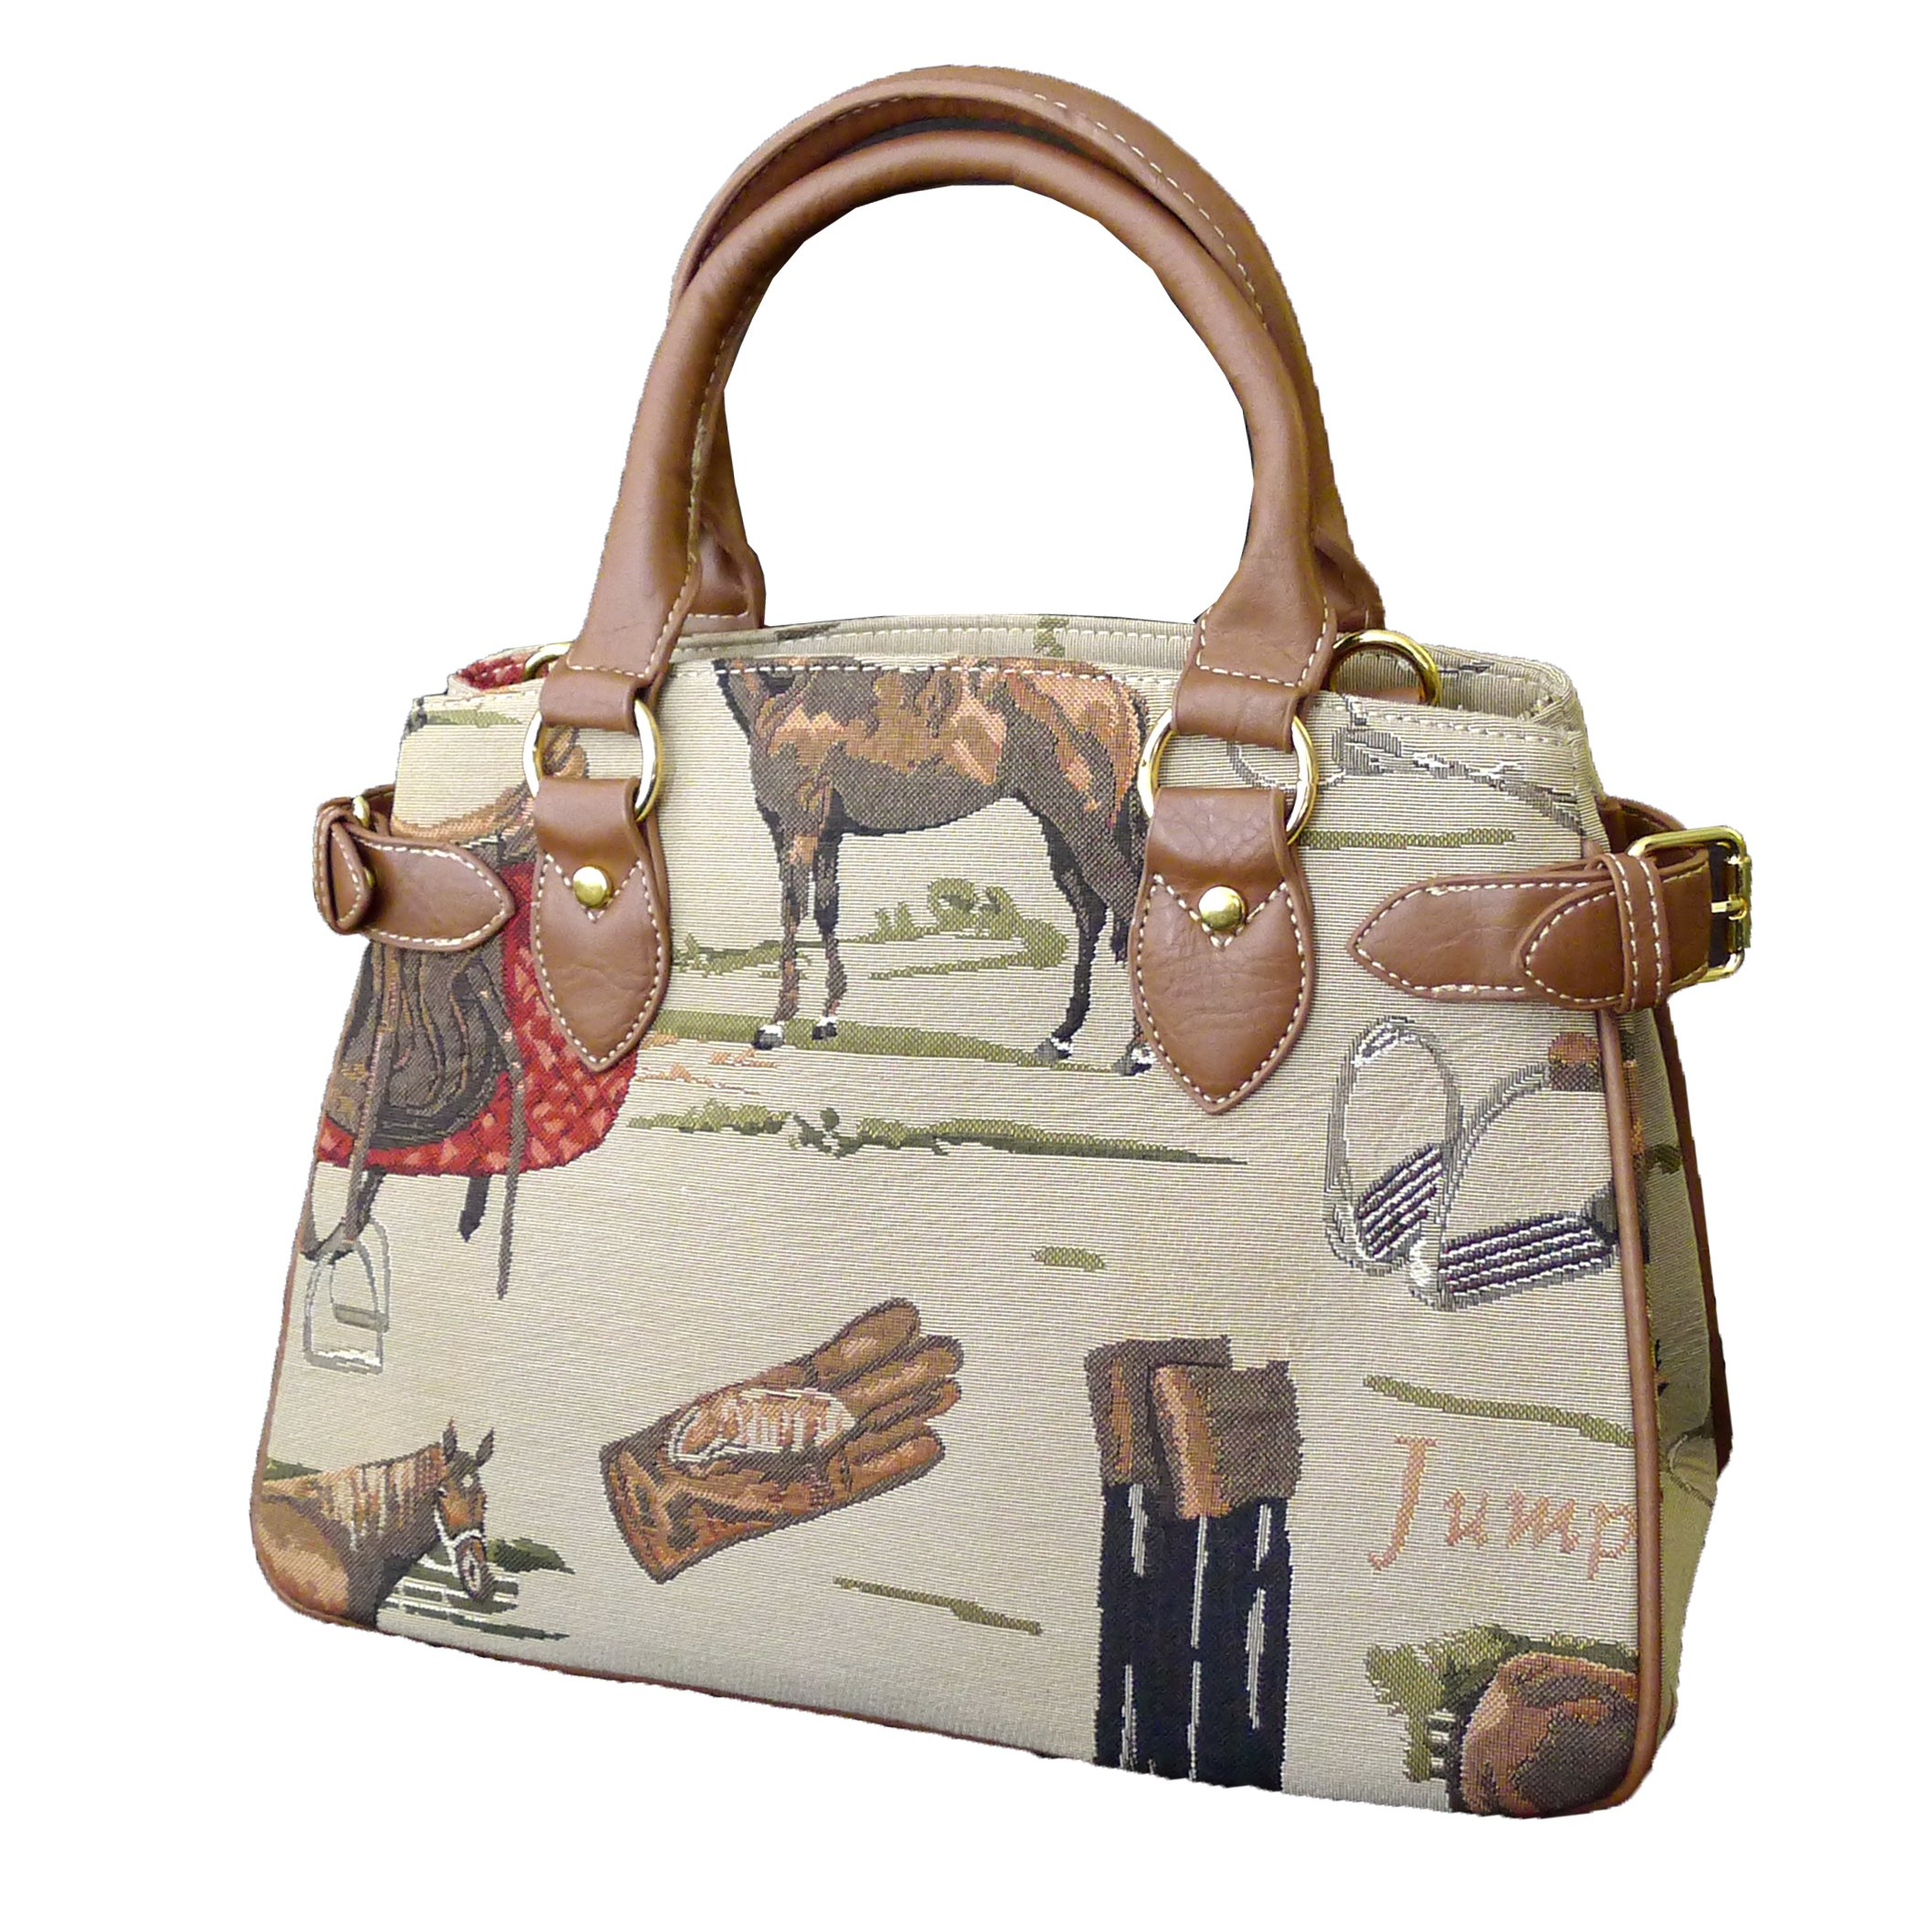 Signare 18873-Horse Horse Center Compartment Purse, Tapestry by Signare